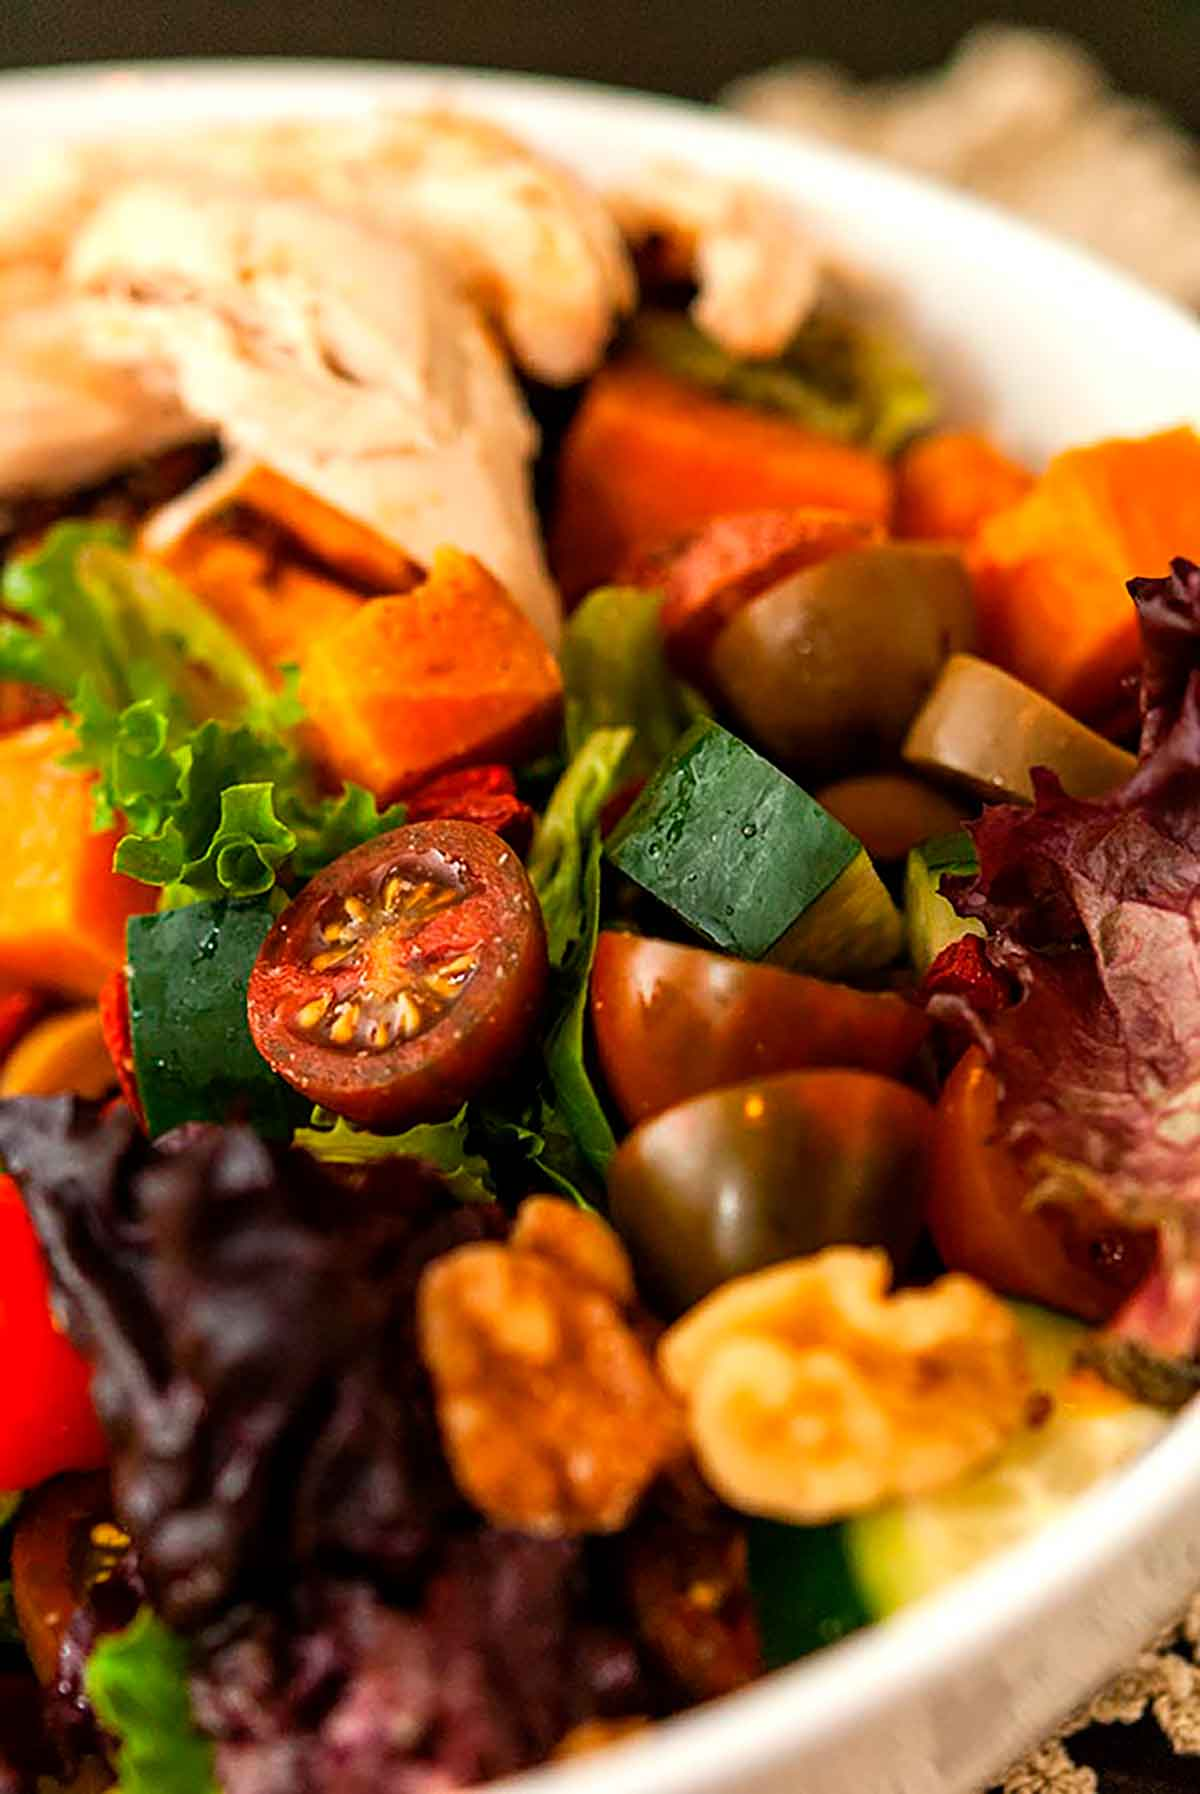 A colorful salad with many assorted vegetables.